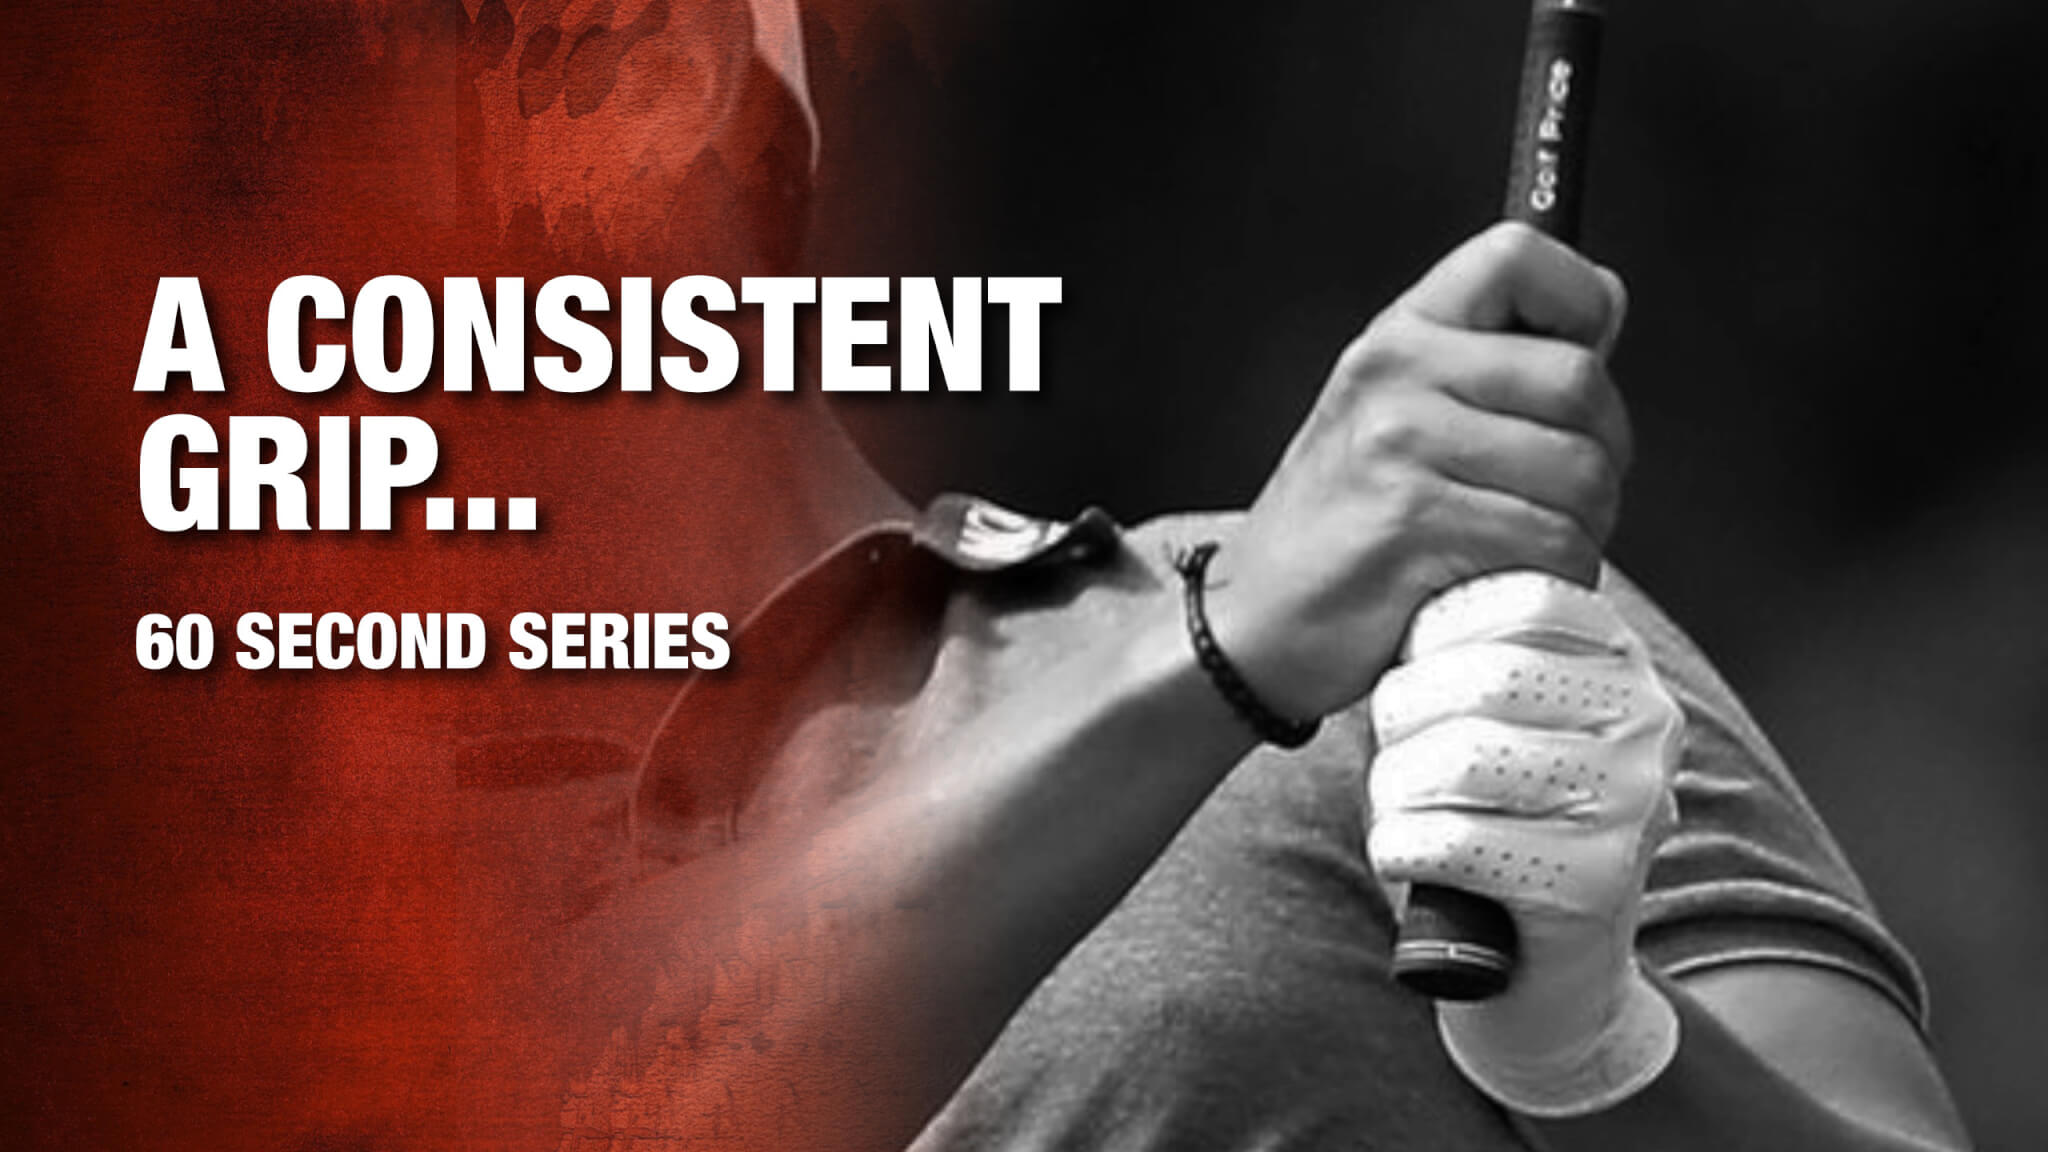 Do You Have A Consistent Grip?